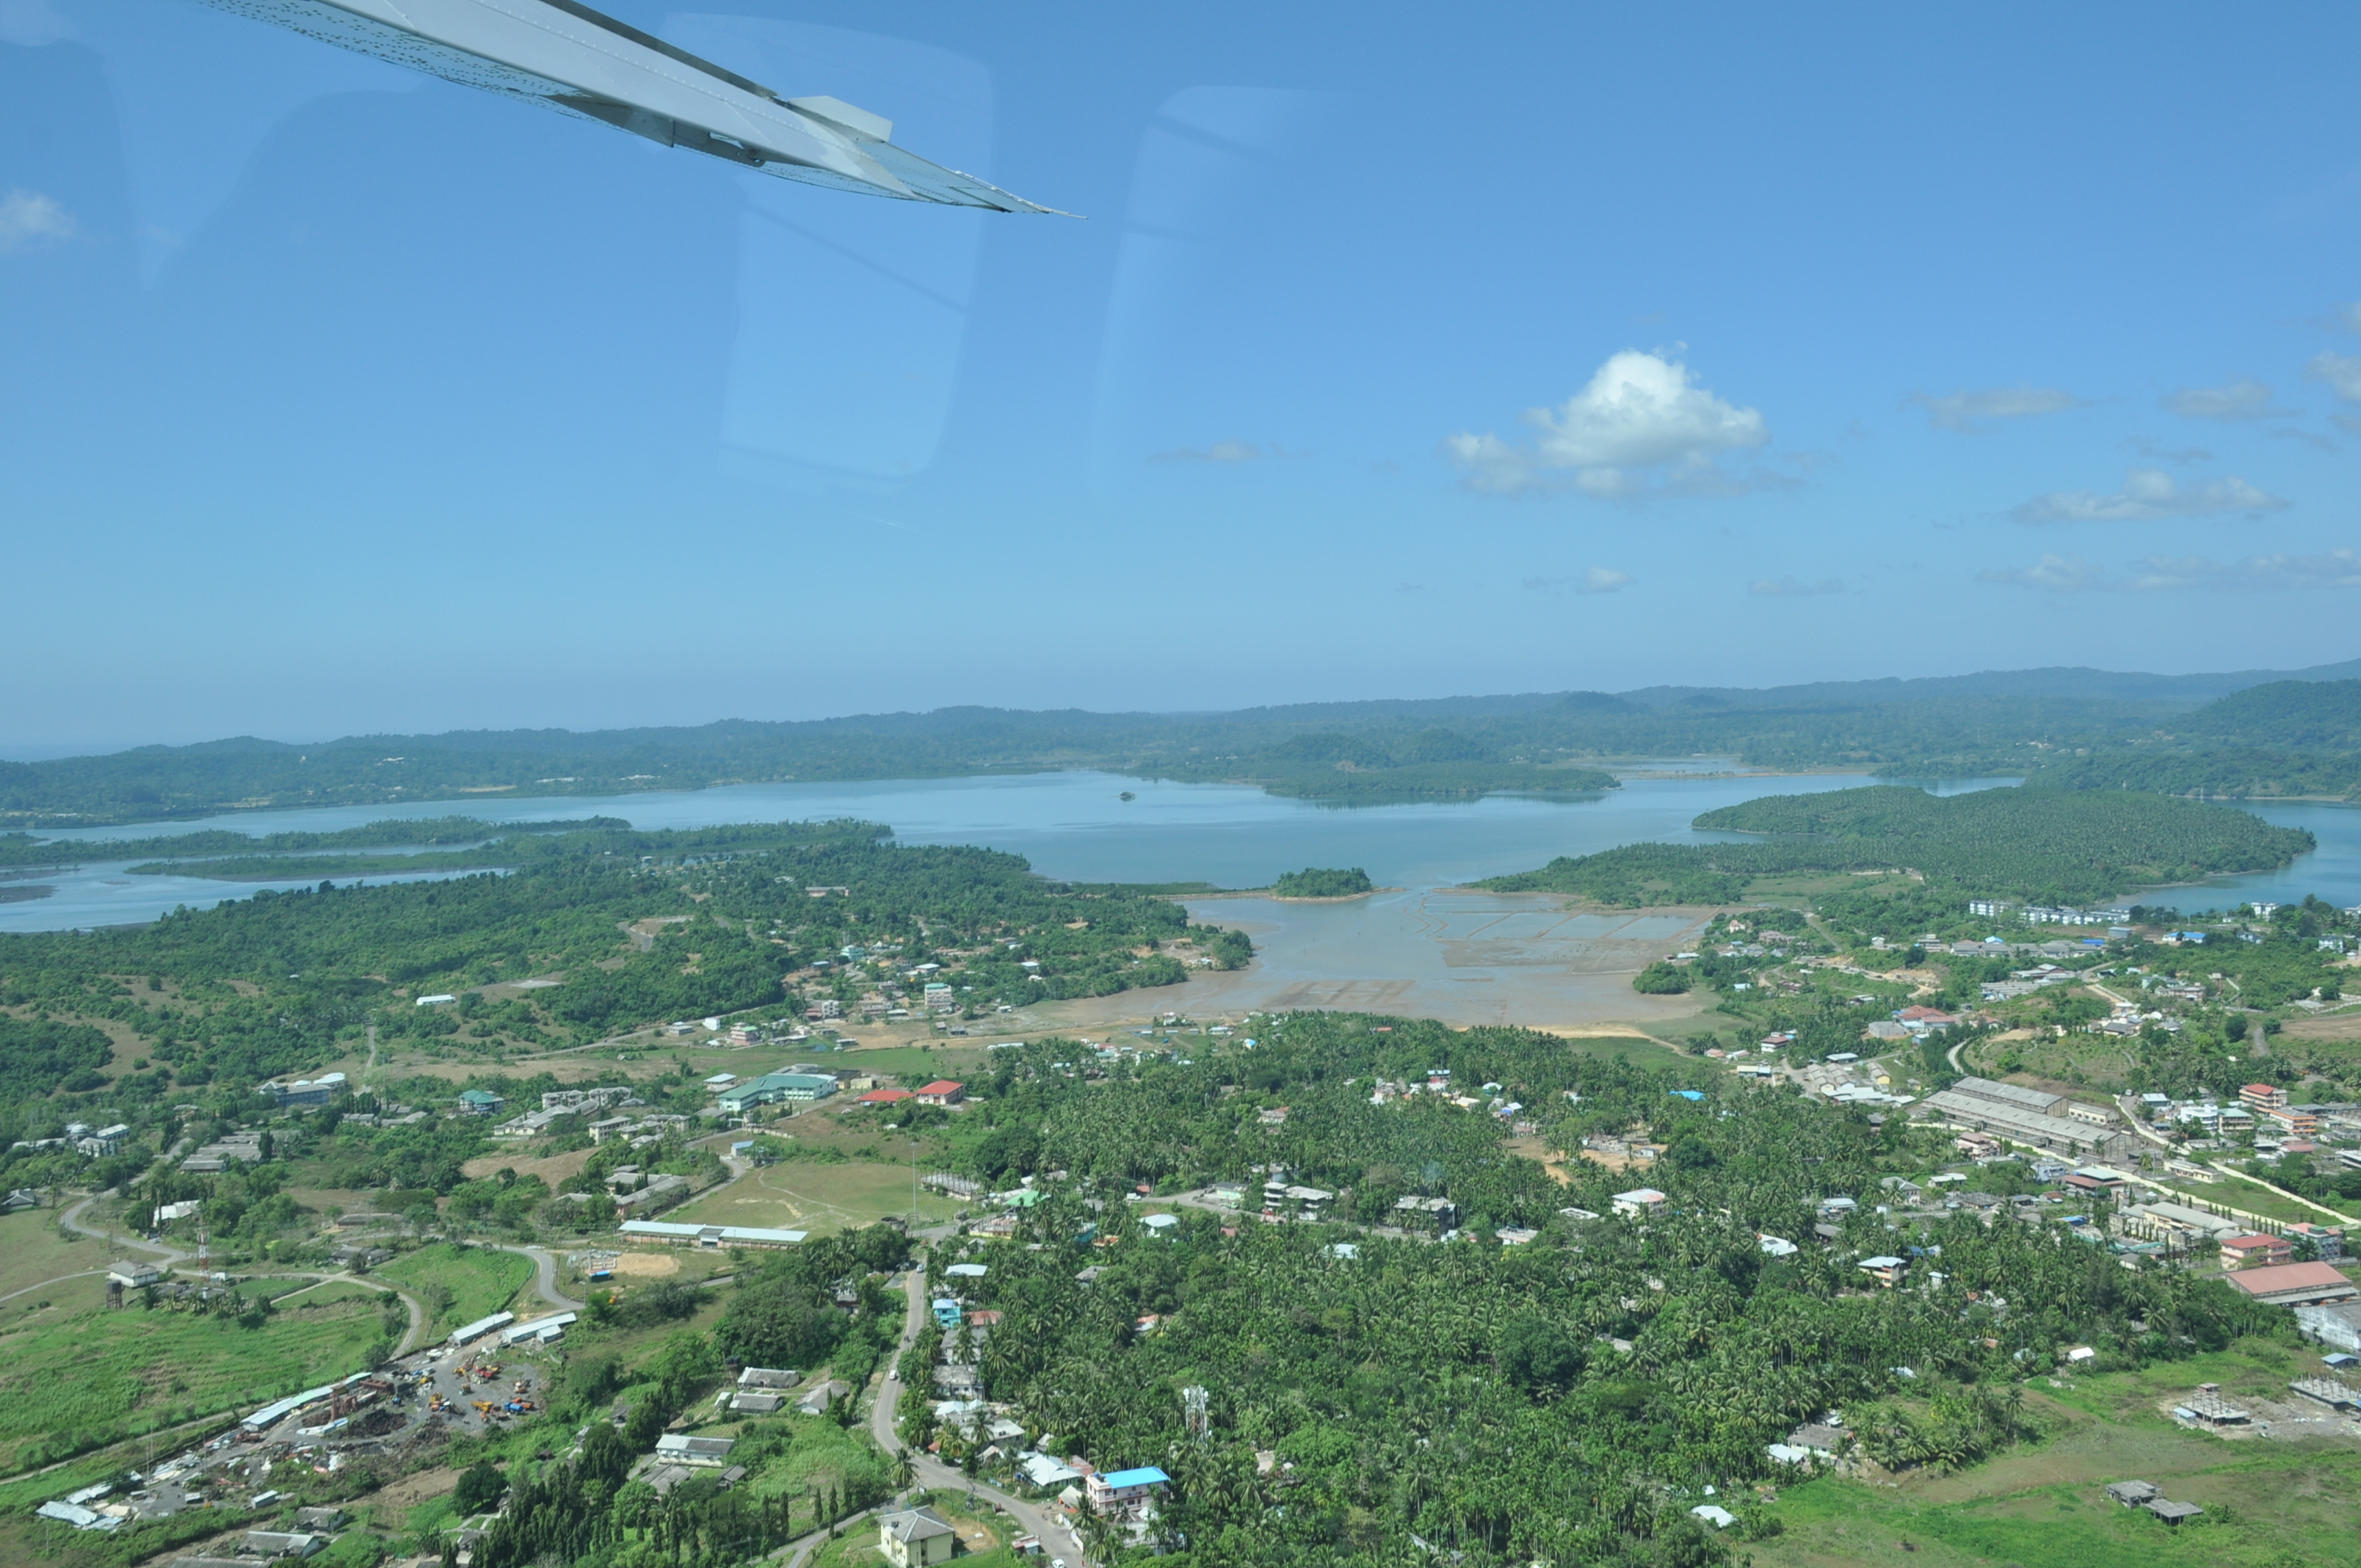 Aerial View of Diglipur, North Andaman Islands